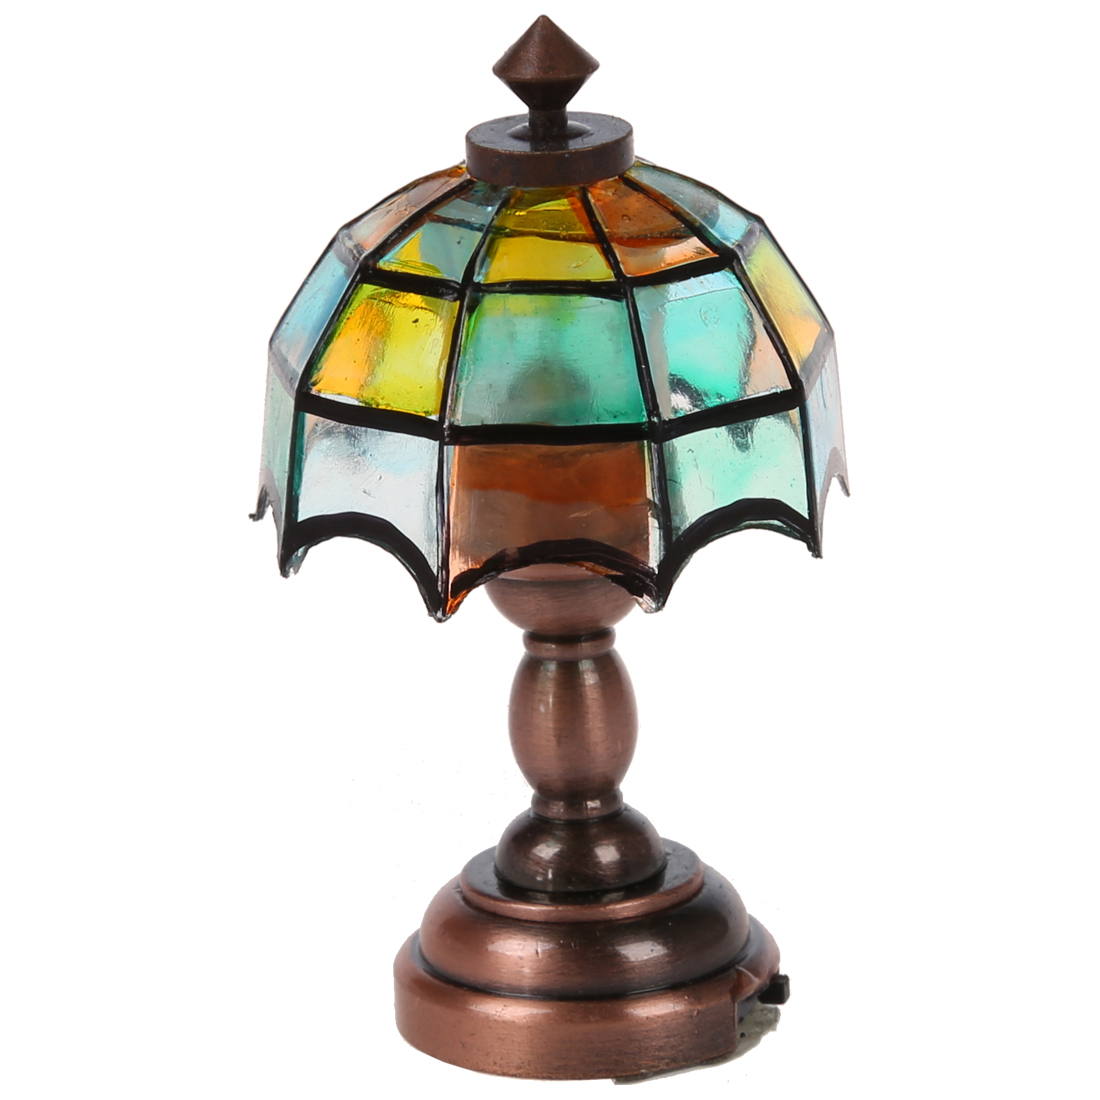 Orderly Bronze Metal 1:12 Dollhouse Miniature Led Desk Lamp Model With Multicolor Umbrella Shape Lampshade Furniture Toys Pretend Play